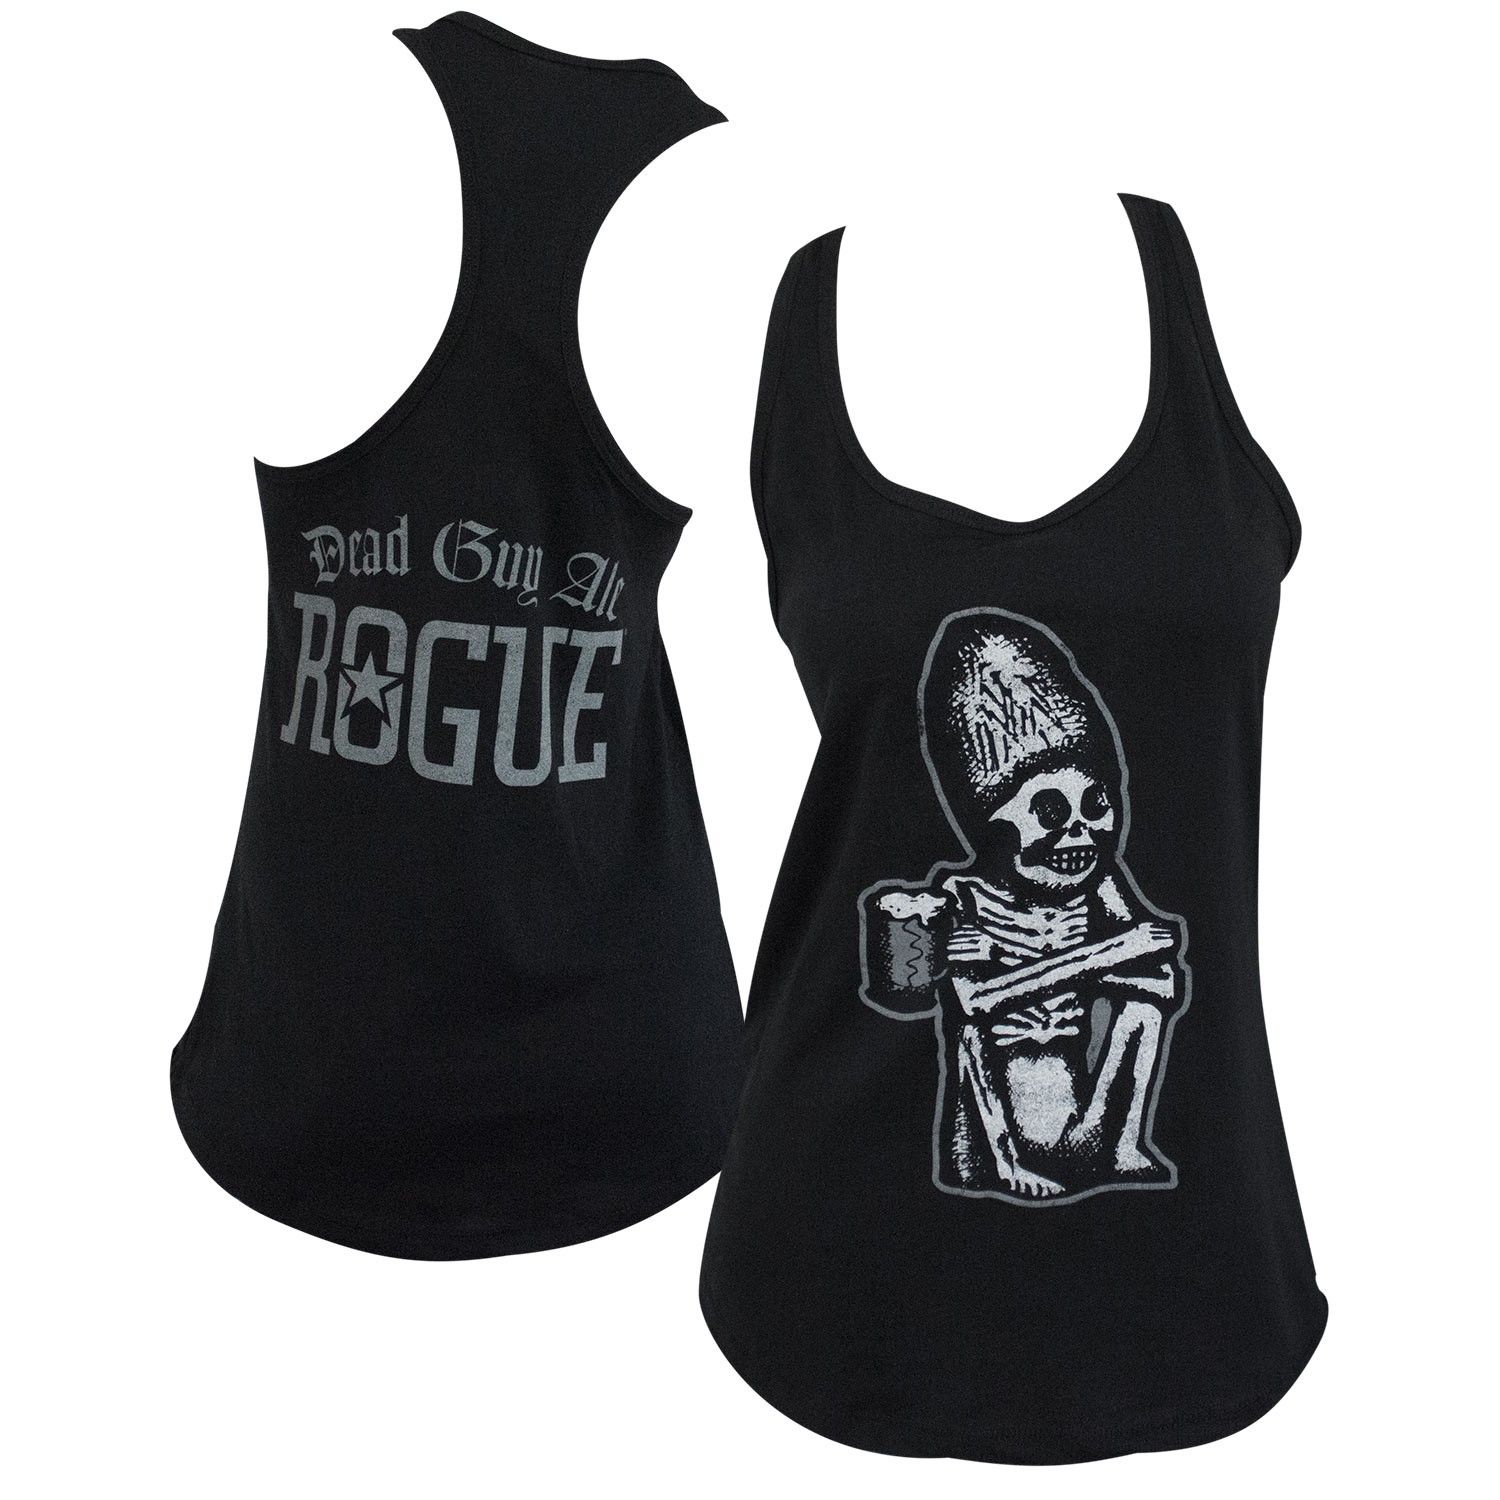 Dead Guy Rogue Women's Black Tank Top